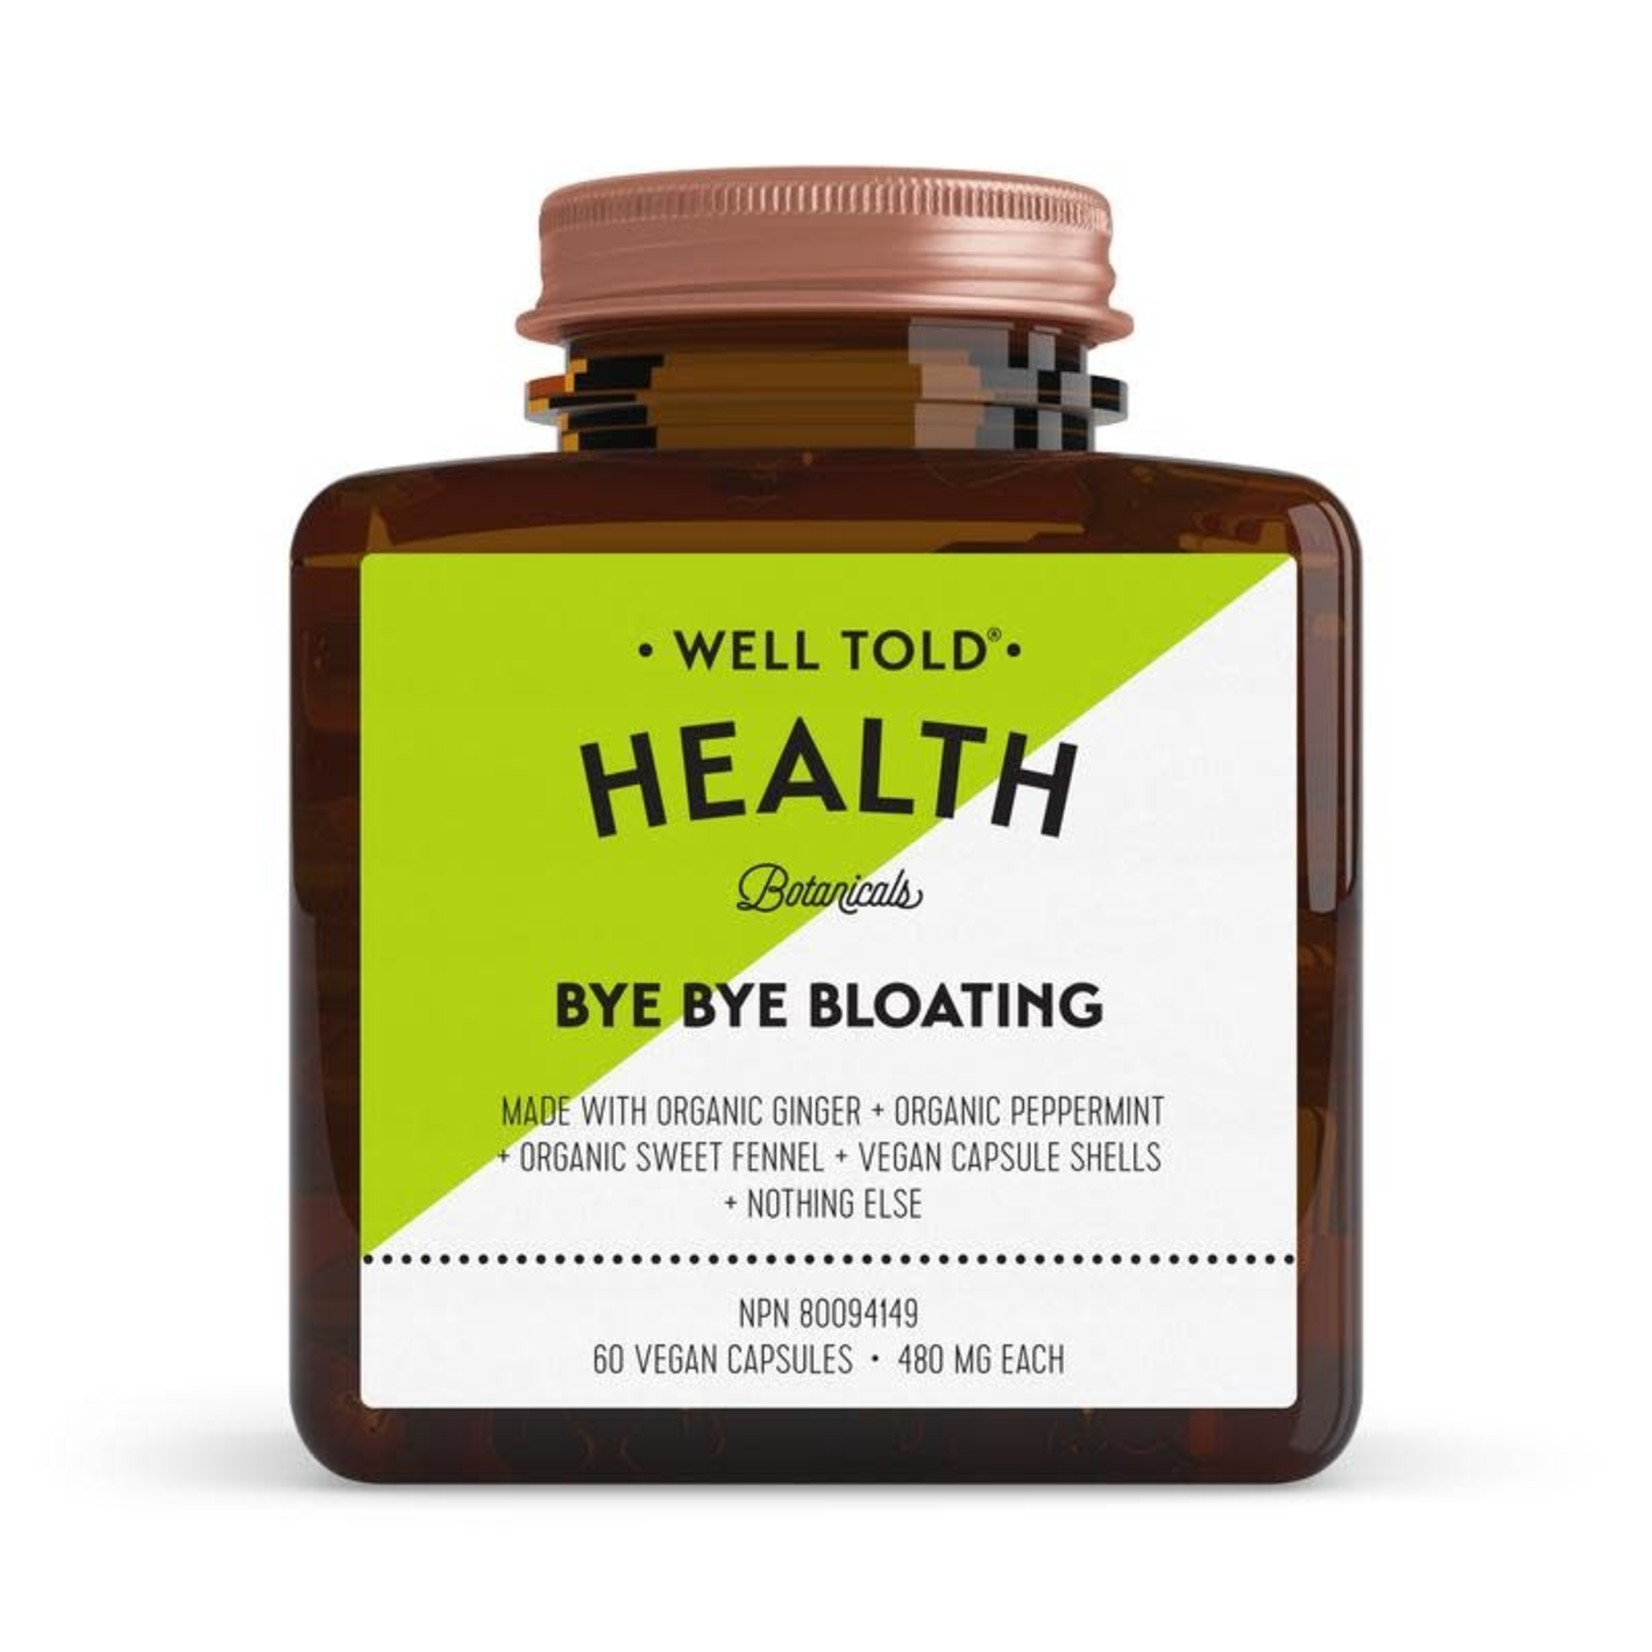 WELL TOLD HEALTH BOTANICALS Bye Bye Bloating